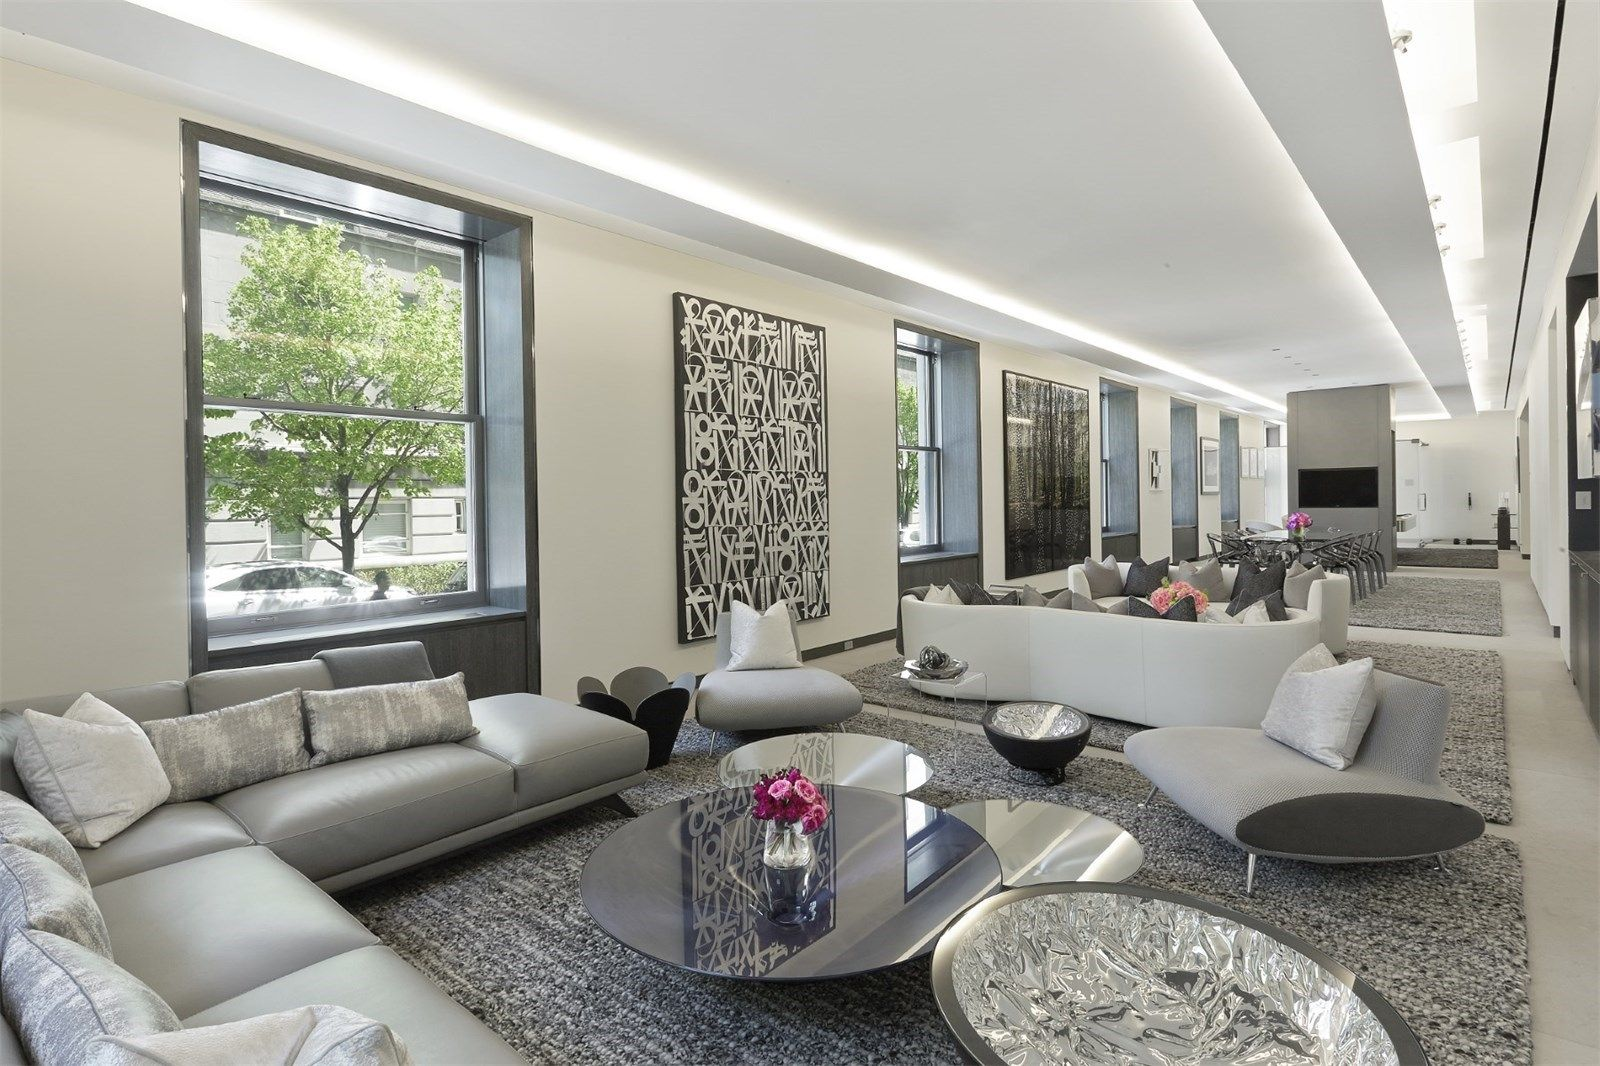 927 Fifth Avenue Apt 1n New York, New York, United States – Luxury Home For Sale